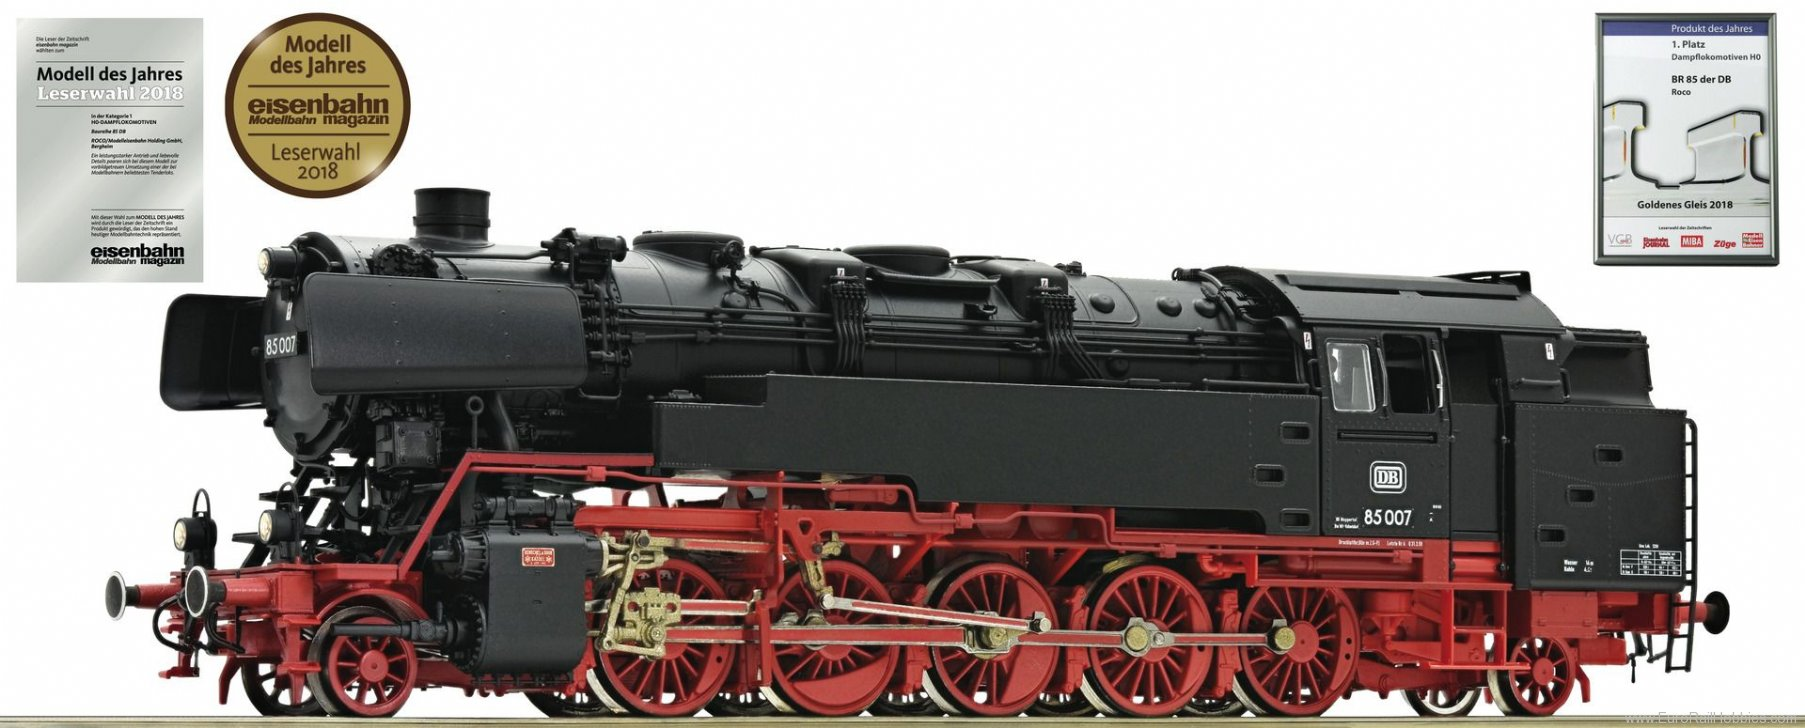 Roco 72270 DB Steam locomotive BR 85 007 of the German F